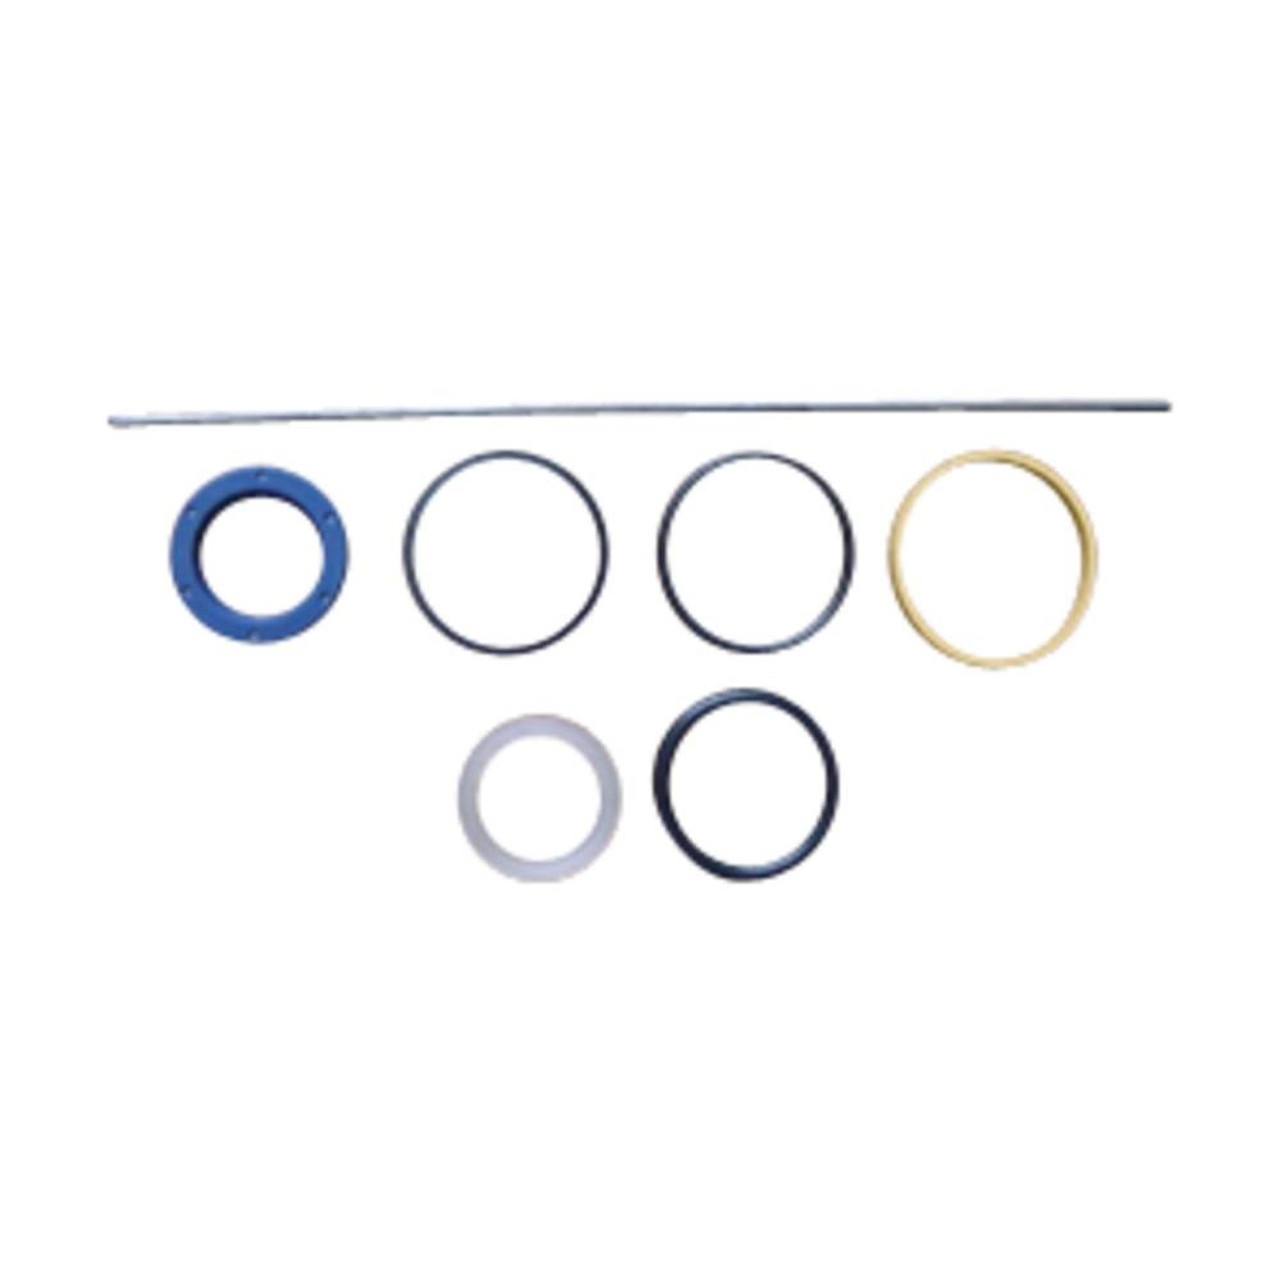 new hydraulic cylinder seal kit ford new holland 340 540 others-251369